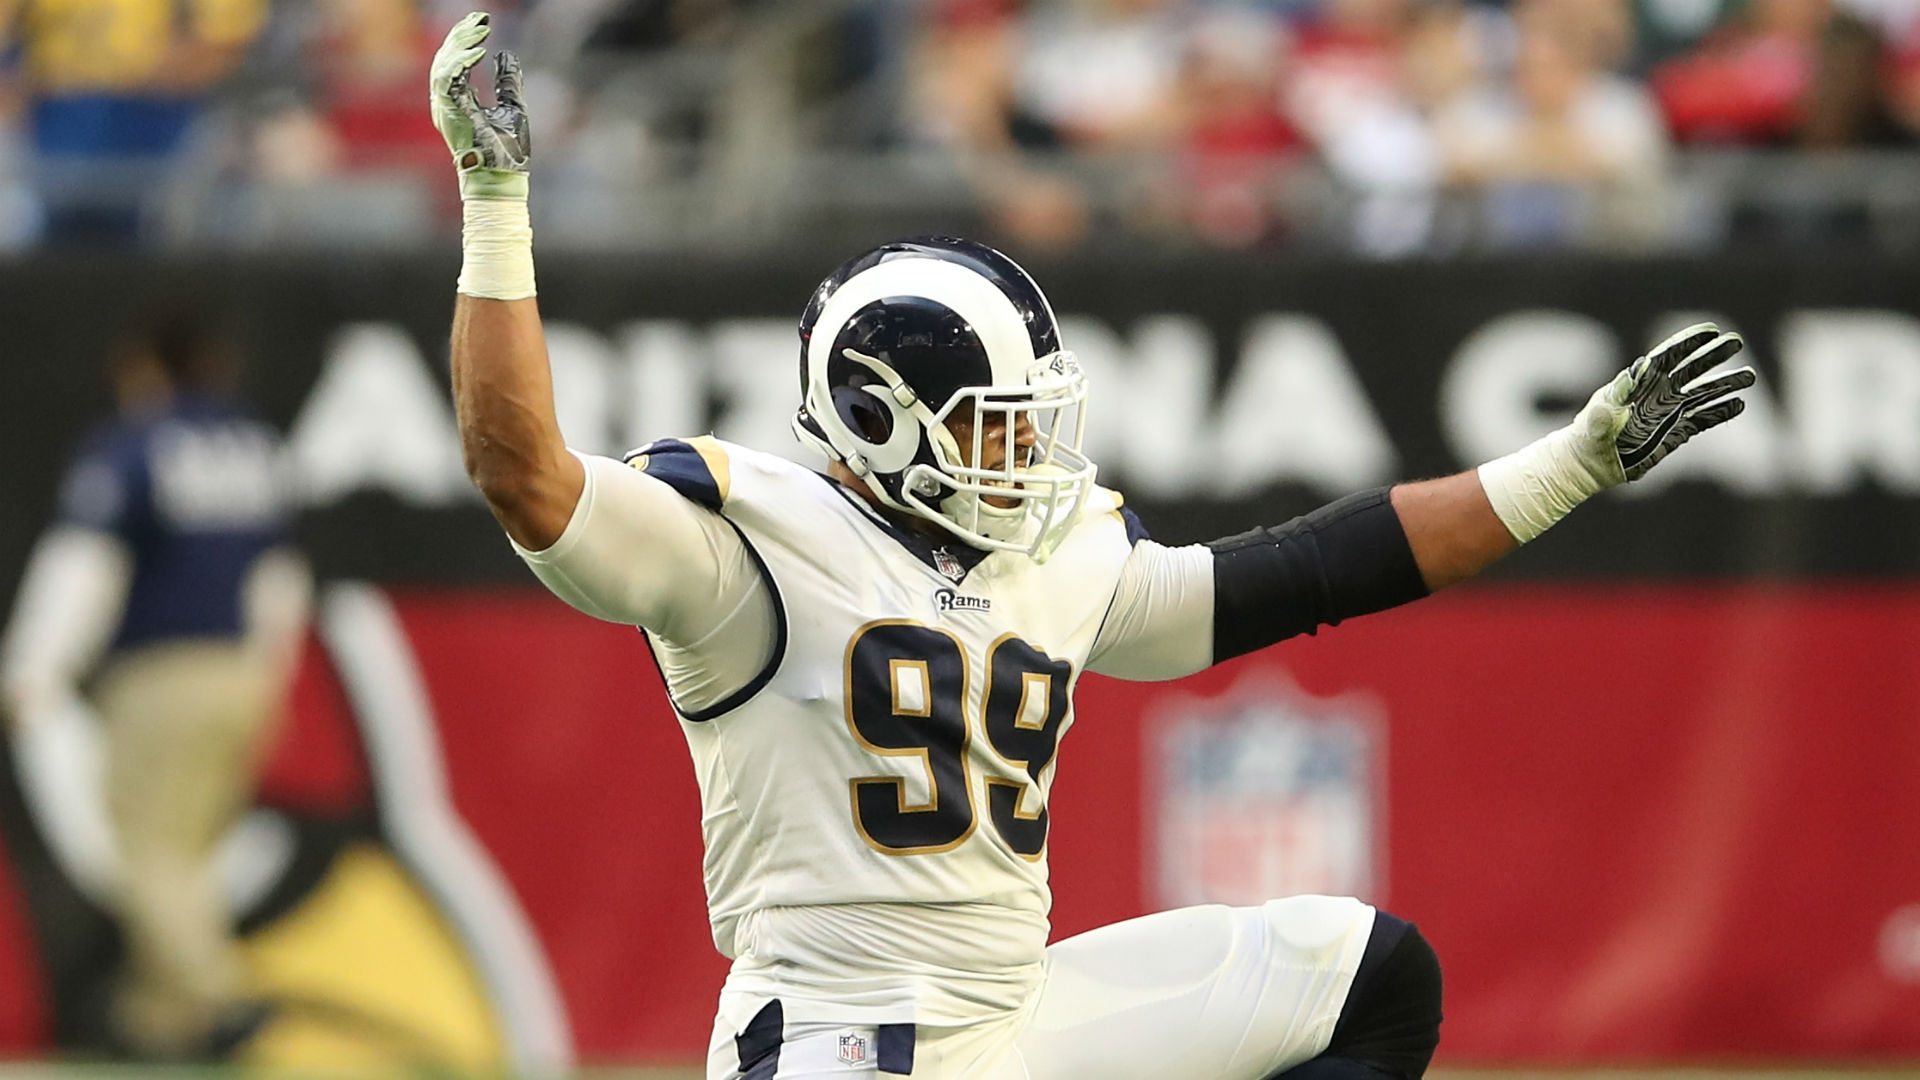 Here's what uniforms Rams will wear vs. Saints in NFC title game